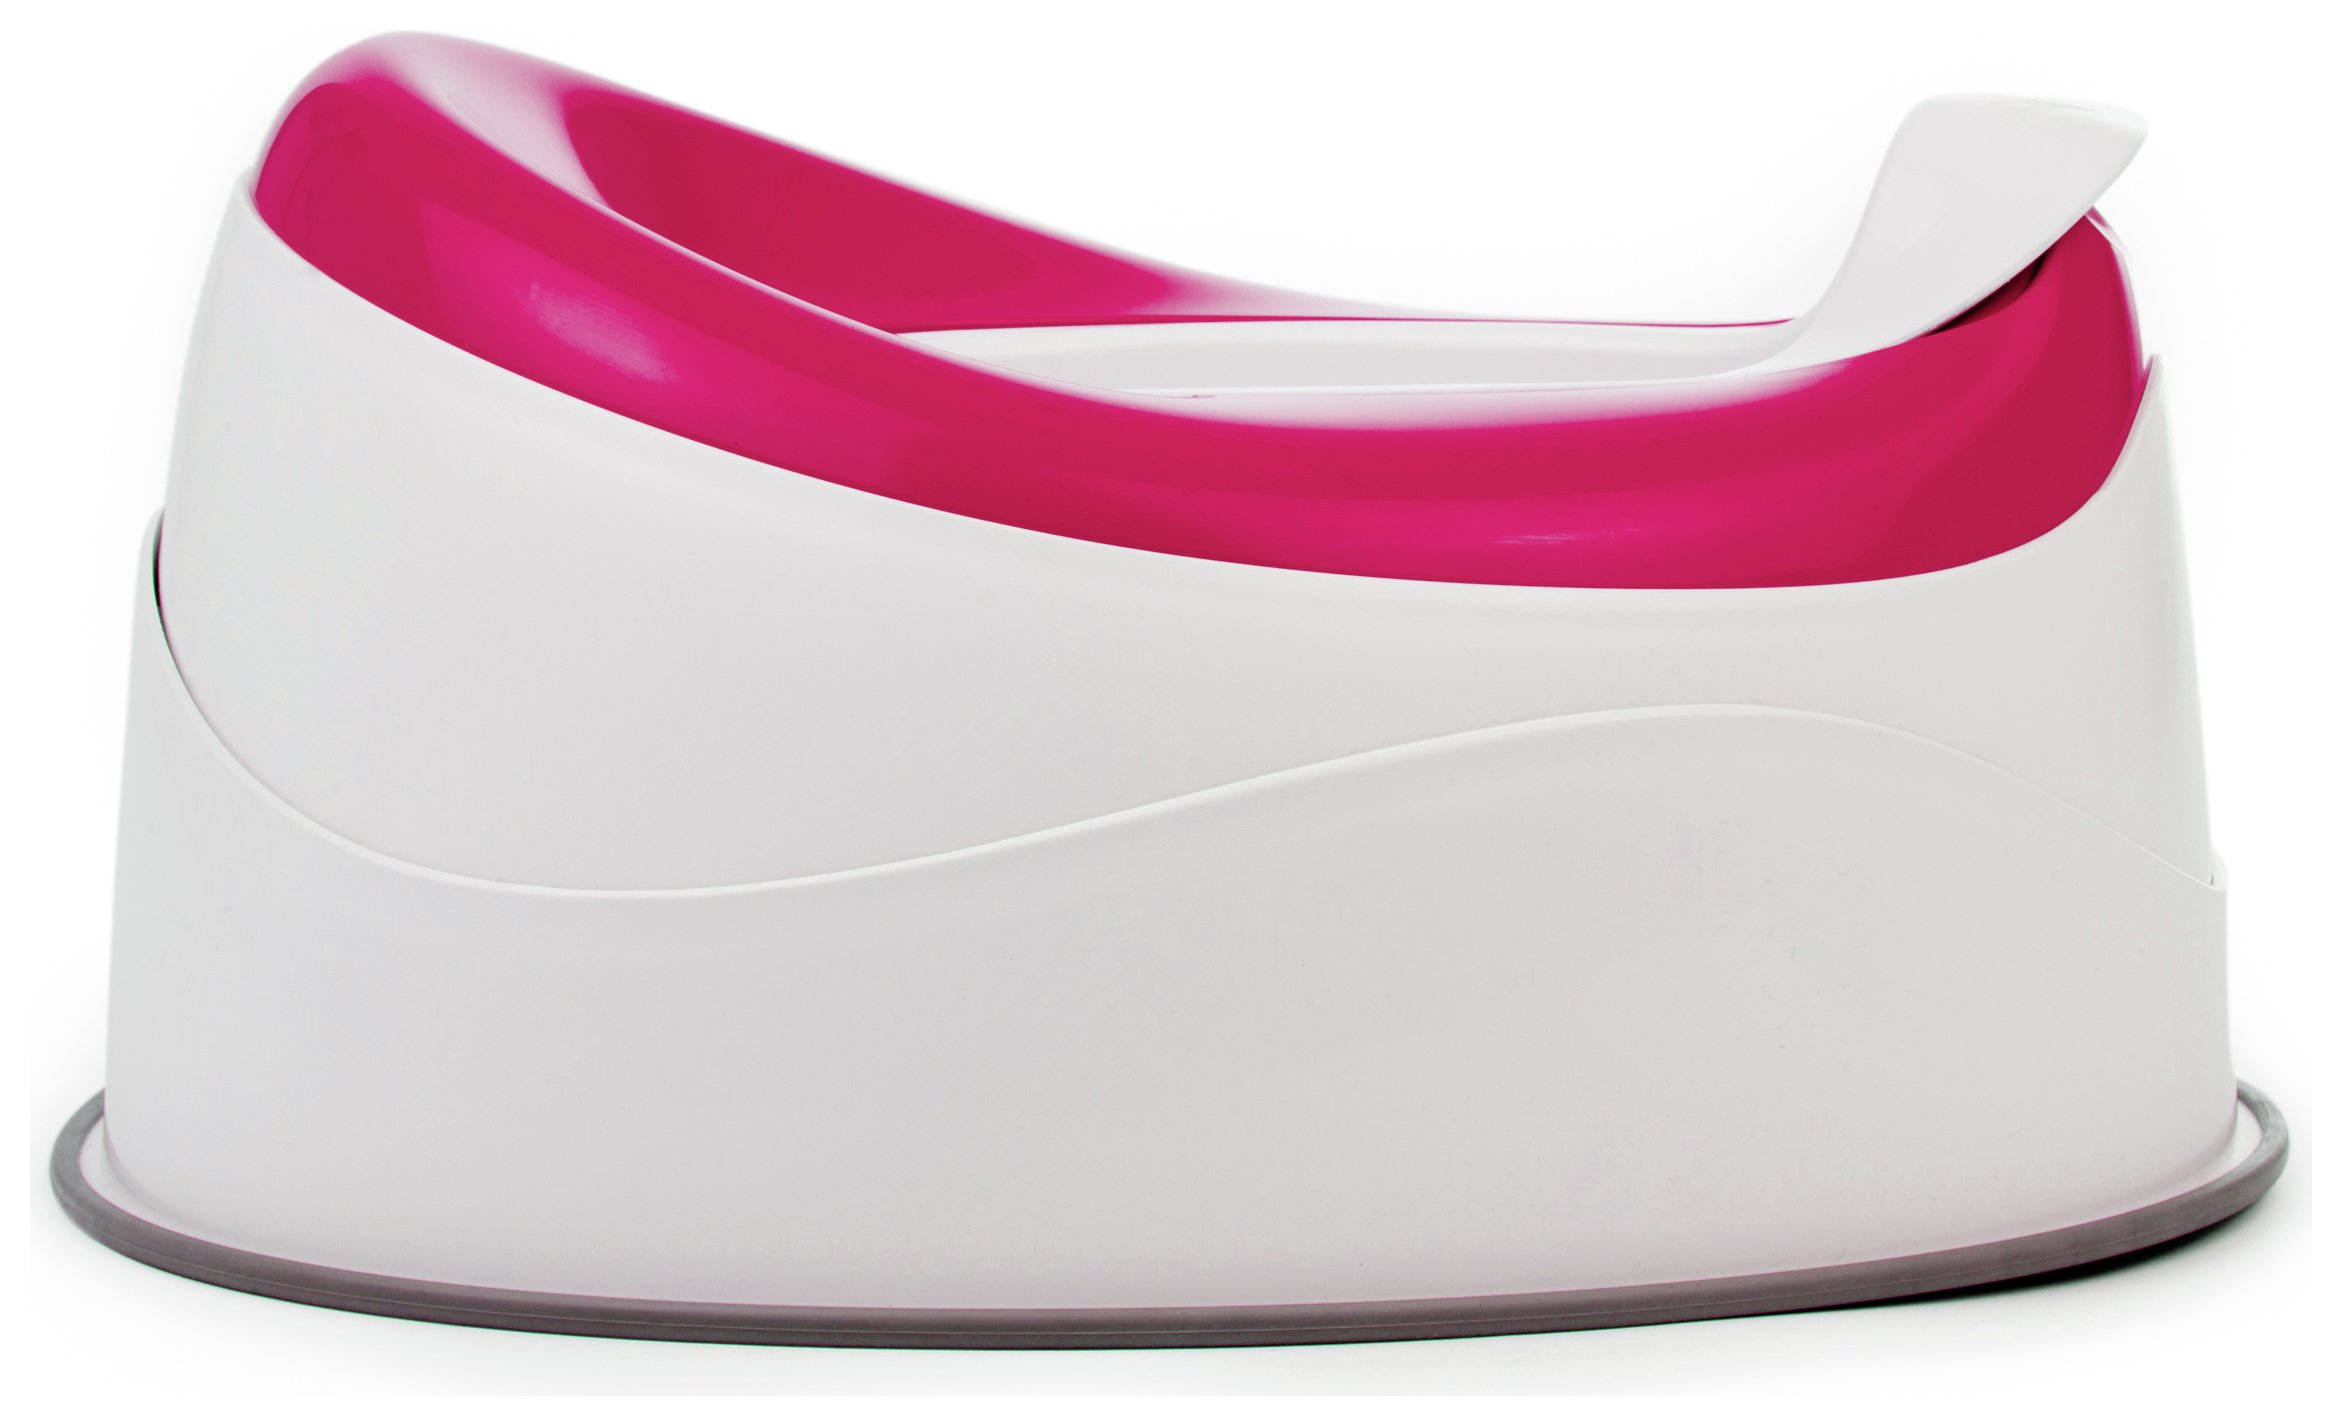 Image of Prince Lionheart Squish Potty Pod - Flashbulb Fuchsia.